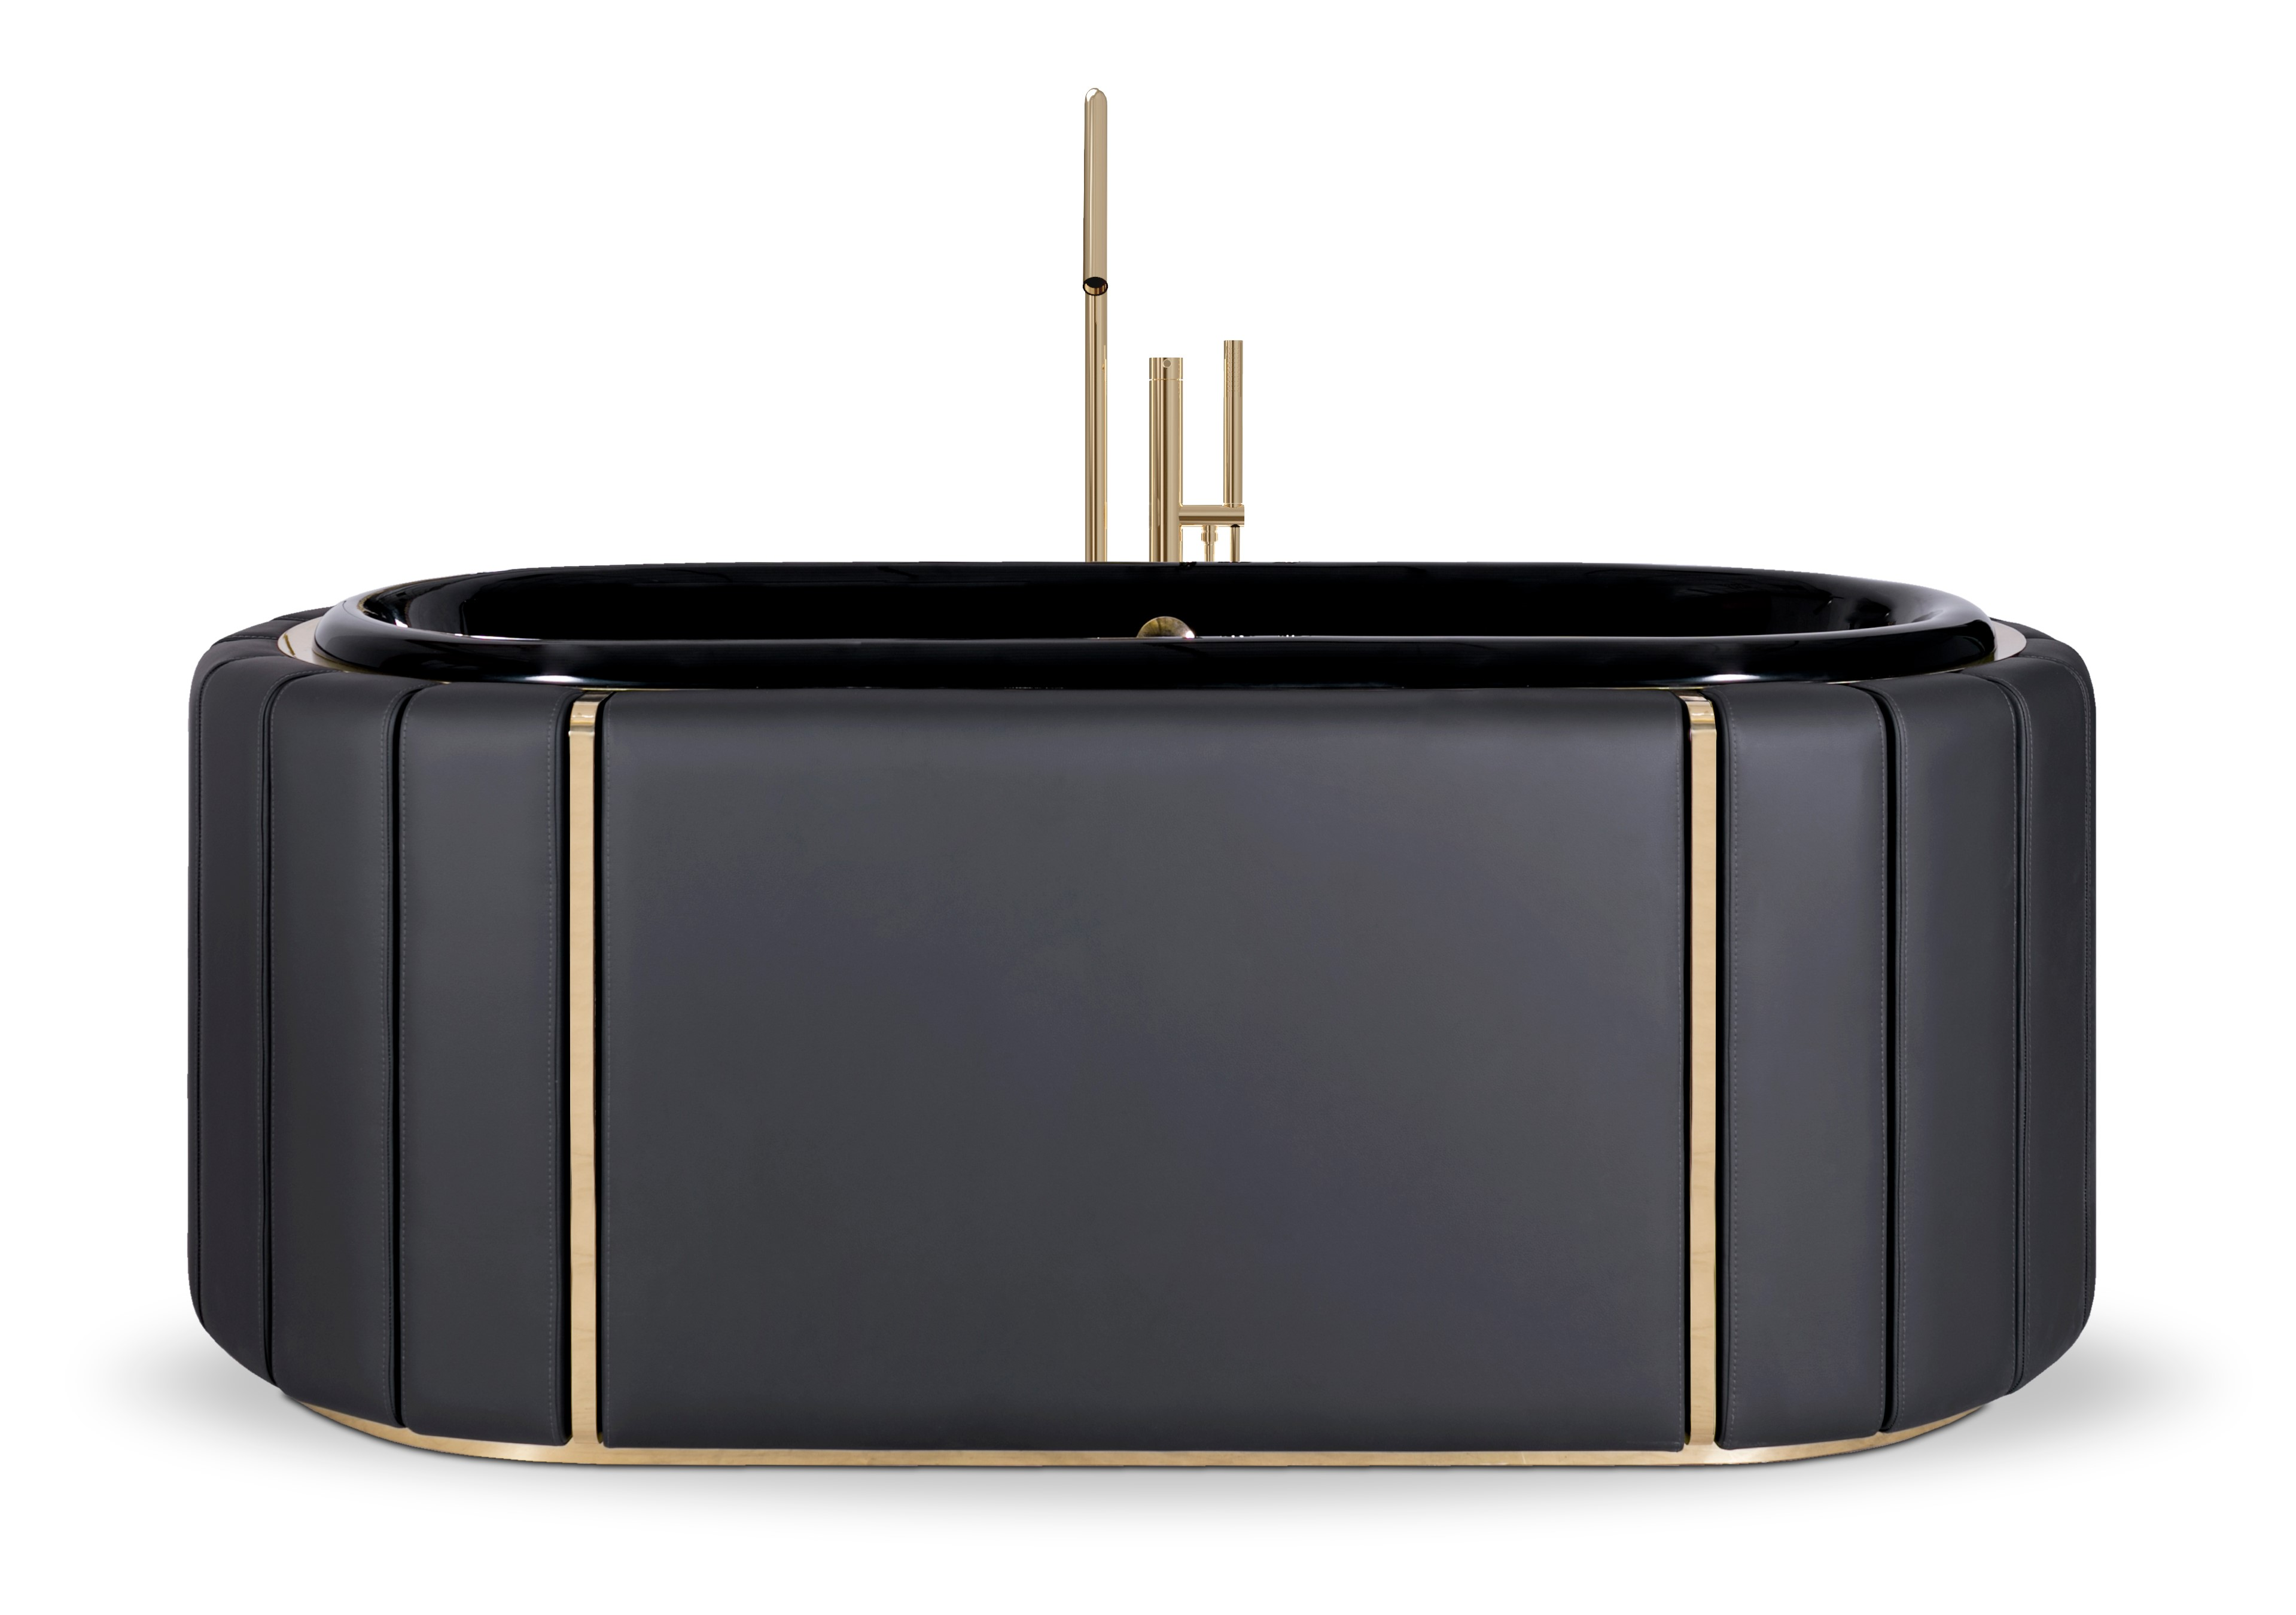 Black Bathtubs for Luxury Bathroom Ideas black bathtub darian bathtub 3